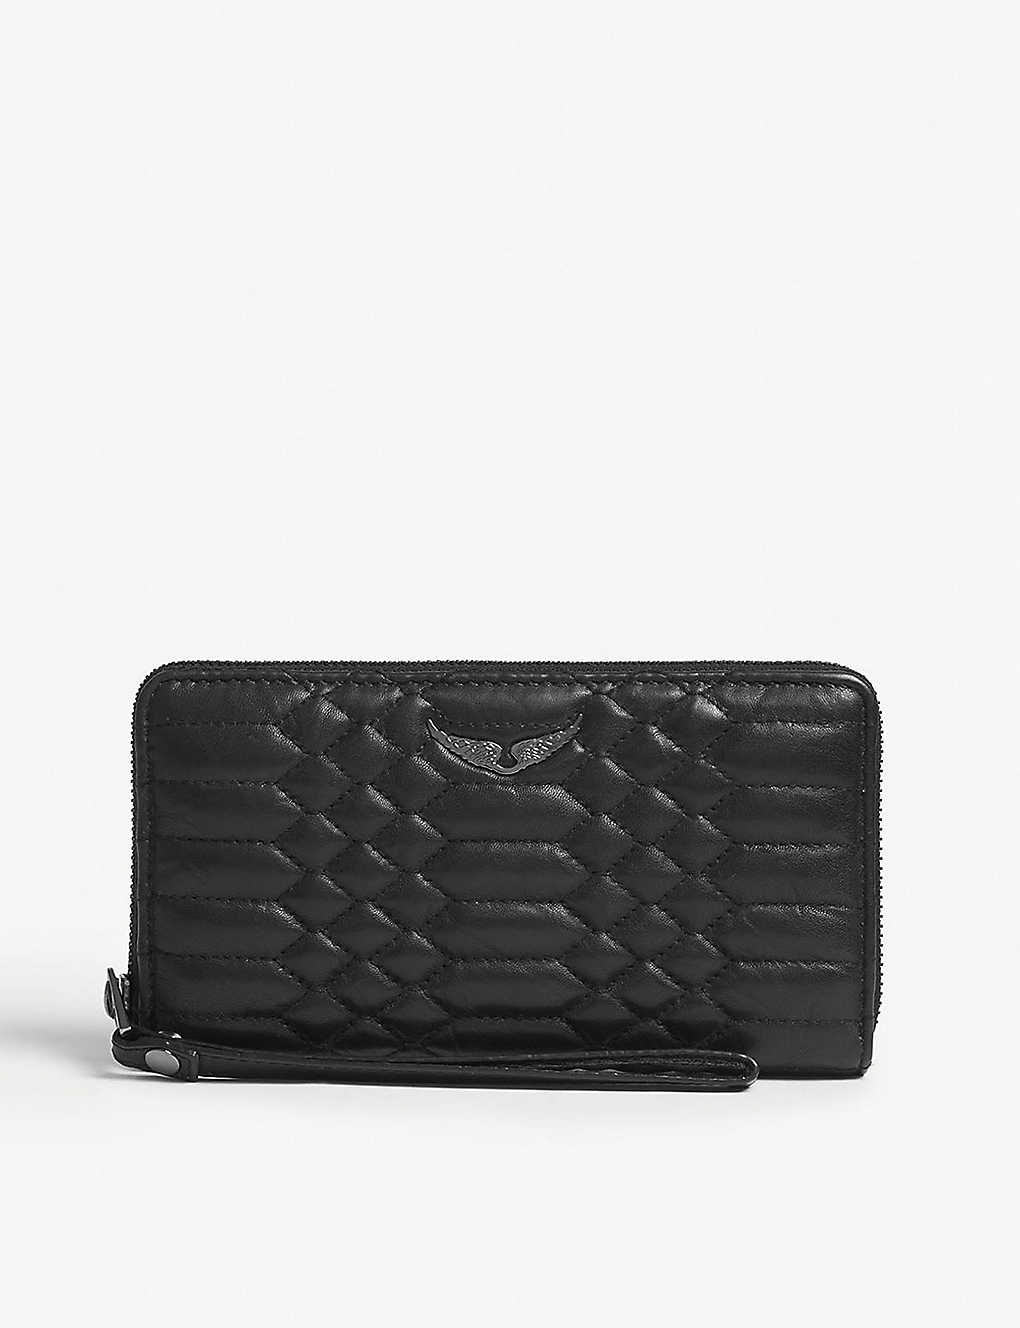 4f614ce032 KAREN MILLEN - Suede leather clutch bag | Selfridges.com